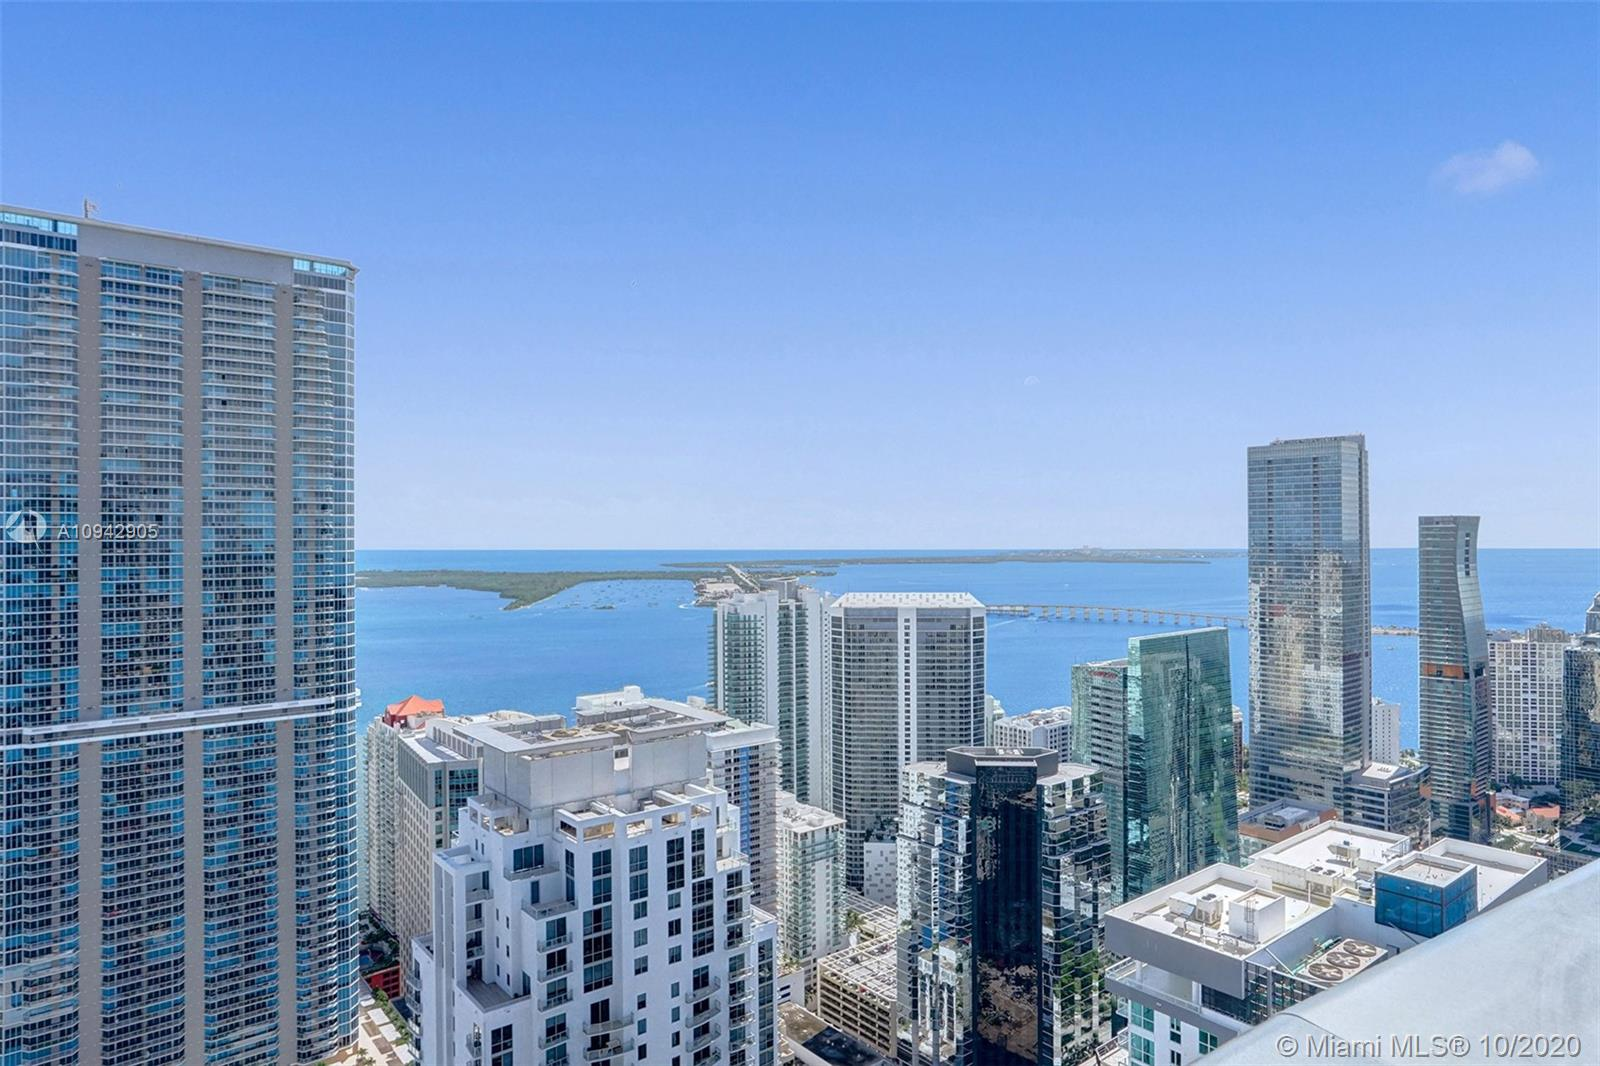 Panoramic east views capture Atlantic Ocean, Biscayne Bay, Magic City Skyline and the Port of Miami from this magnificent Penthouse perched atop the 60th floor. This spectacular Penthouse is the epitome of luxury, chic urban living.  Some features include upgraded built-in furniture in living room and master bedroom. Beautiful light fixtures installed throughout. Wall fabric installed by Orlean. Travertine floors, Snaidero kitchens, and 10ft ceilings. No detail spared in this 64-story wonder built by Ugo Colombo's CMC Group. State of the art fitness center and spa. Other great amenities include recreation rooms, children's play area, game room, and movie theater. Brickell area cafes, bars and restaurants are just an elevator ride away. Just steps from Brickell City Center.